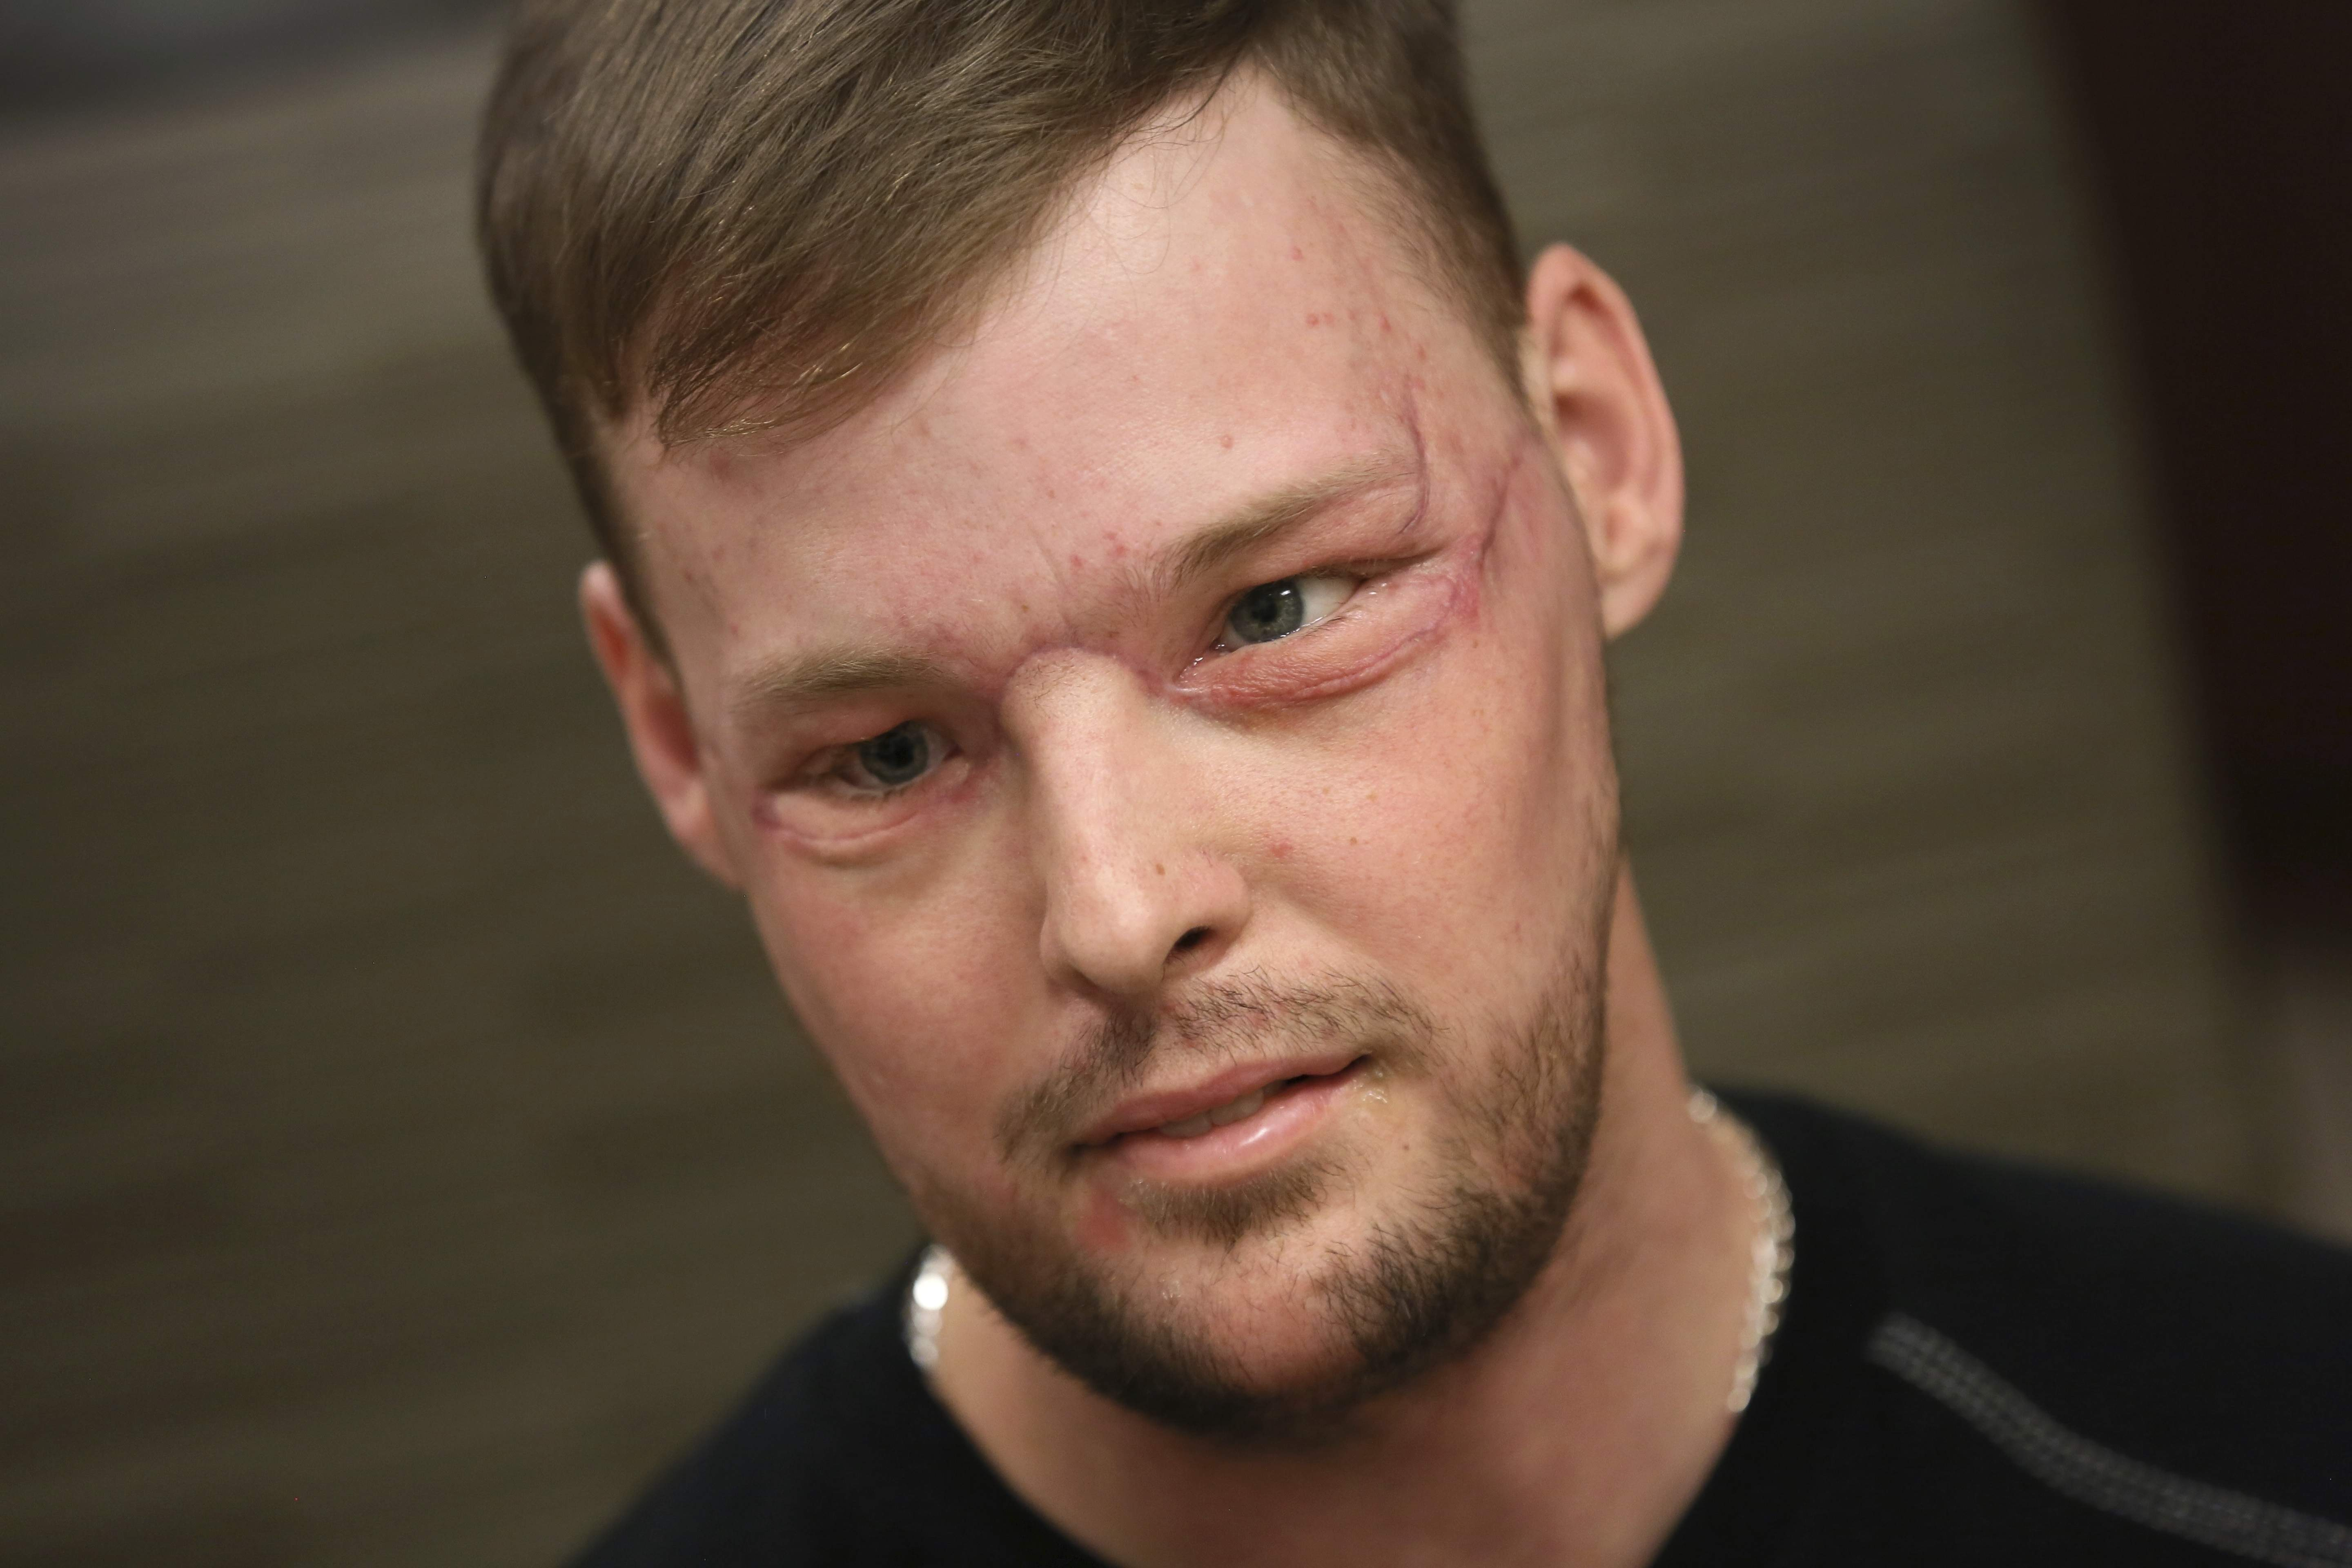 In this Jan. 24, 2017, photo, face transplant recipient Andy Sandness attends a speech therapy appointment at Mayo Clinic in Rochester, Minn. He wasn't allowed to see himself immediately after the surgery. His room mirror and cell phone were removed. When he finally did see his face after three weeks, he was overwhelmed. 'Once you lose something that you've had forever, you know what it's like not to have it. ... And once you get a second chance to have it back, you never forget it.' Just having a nose and mouth are blessings, Sandness says. 'The looks are a bonus.' THE ASSOCIATED PRESS